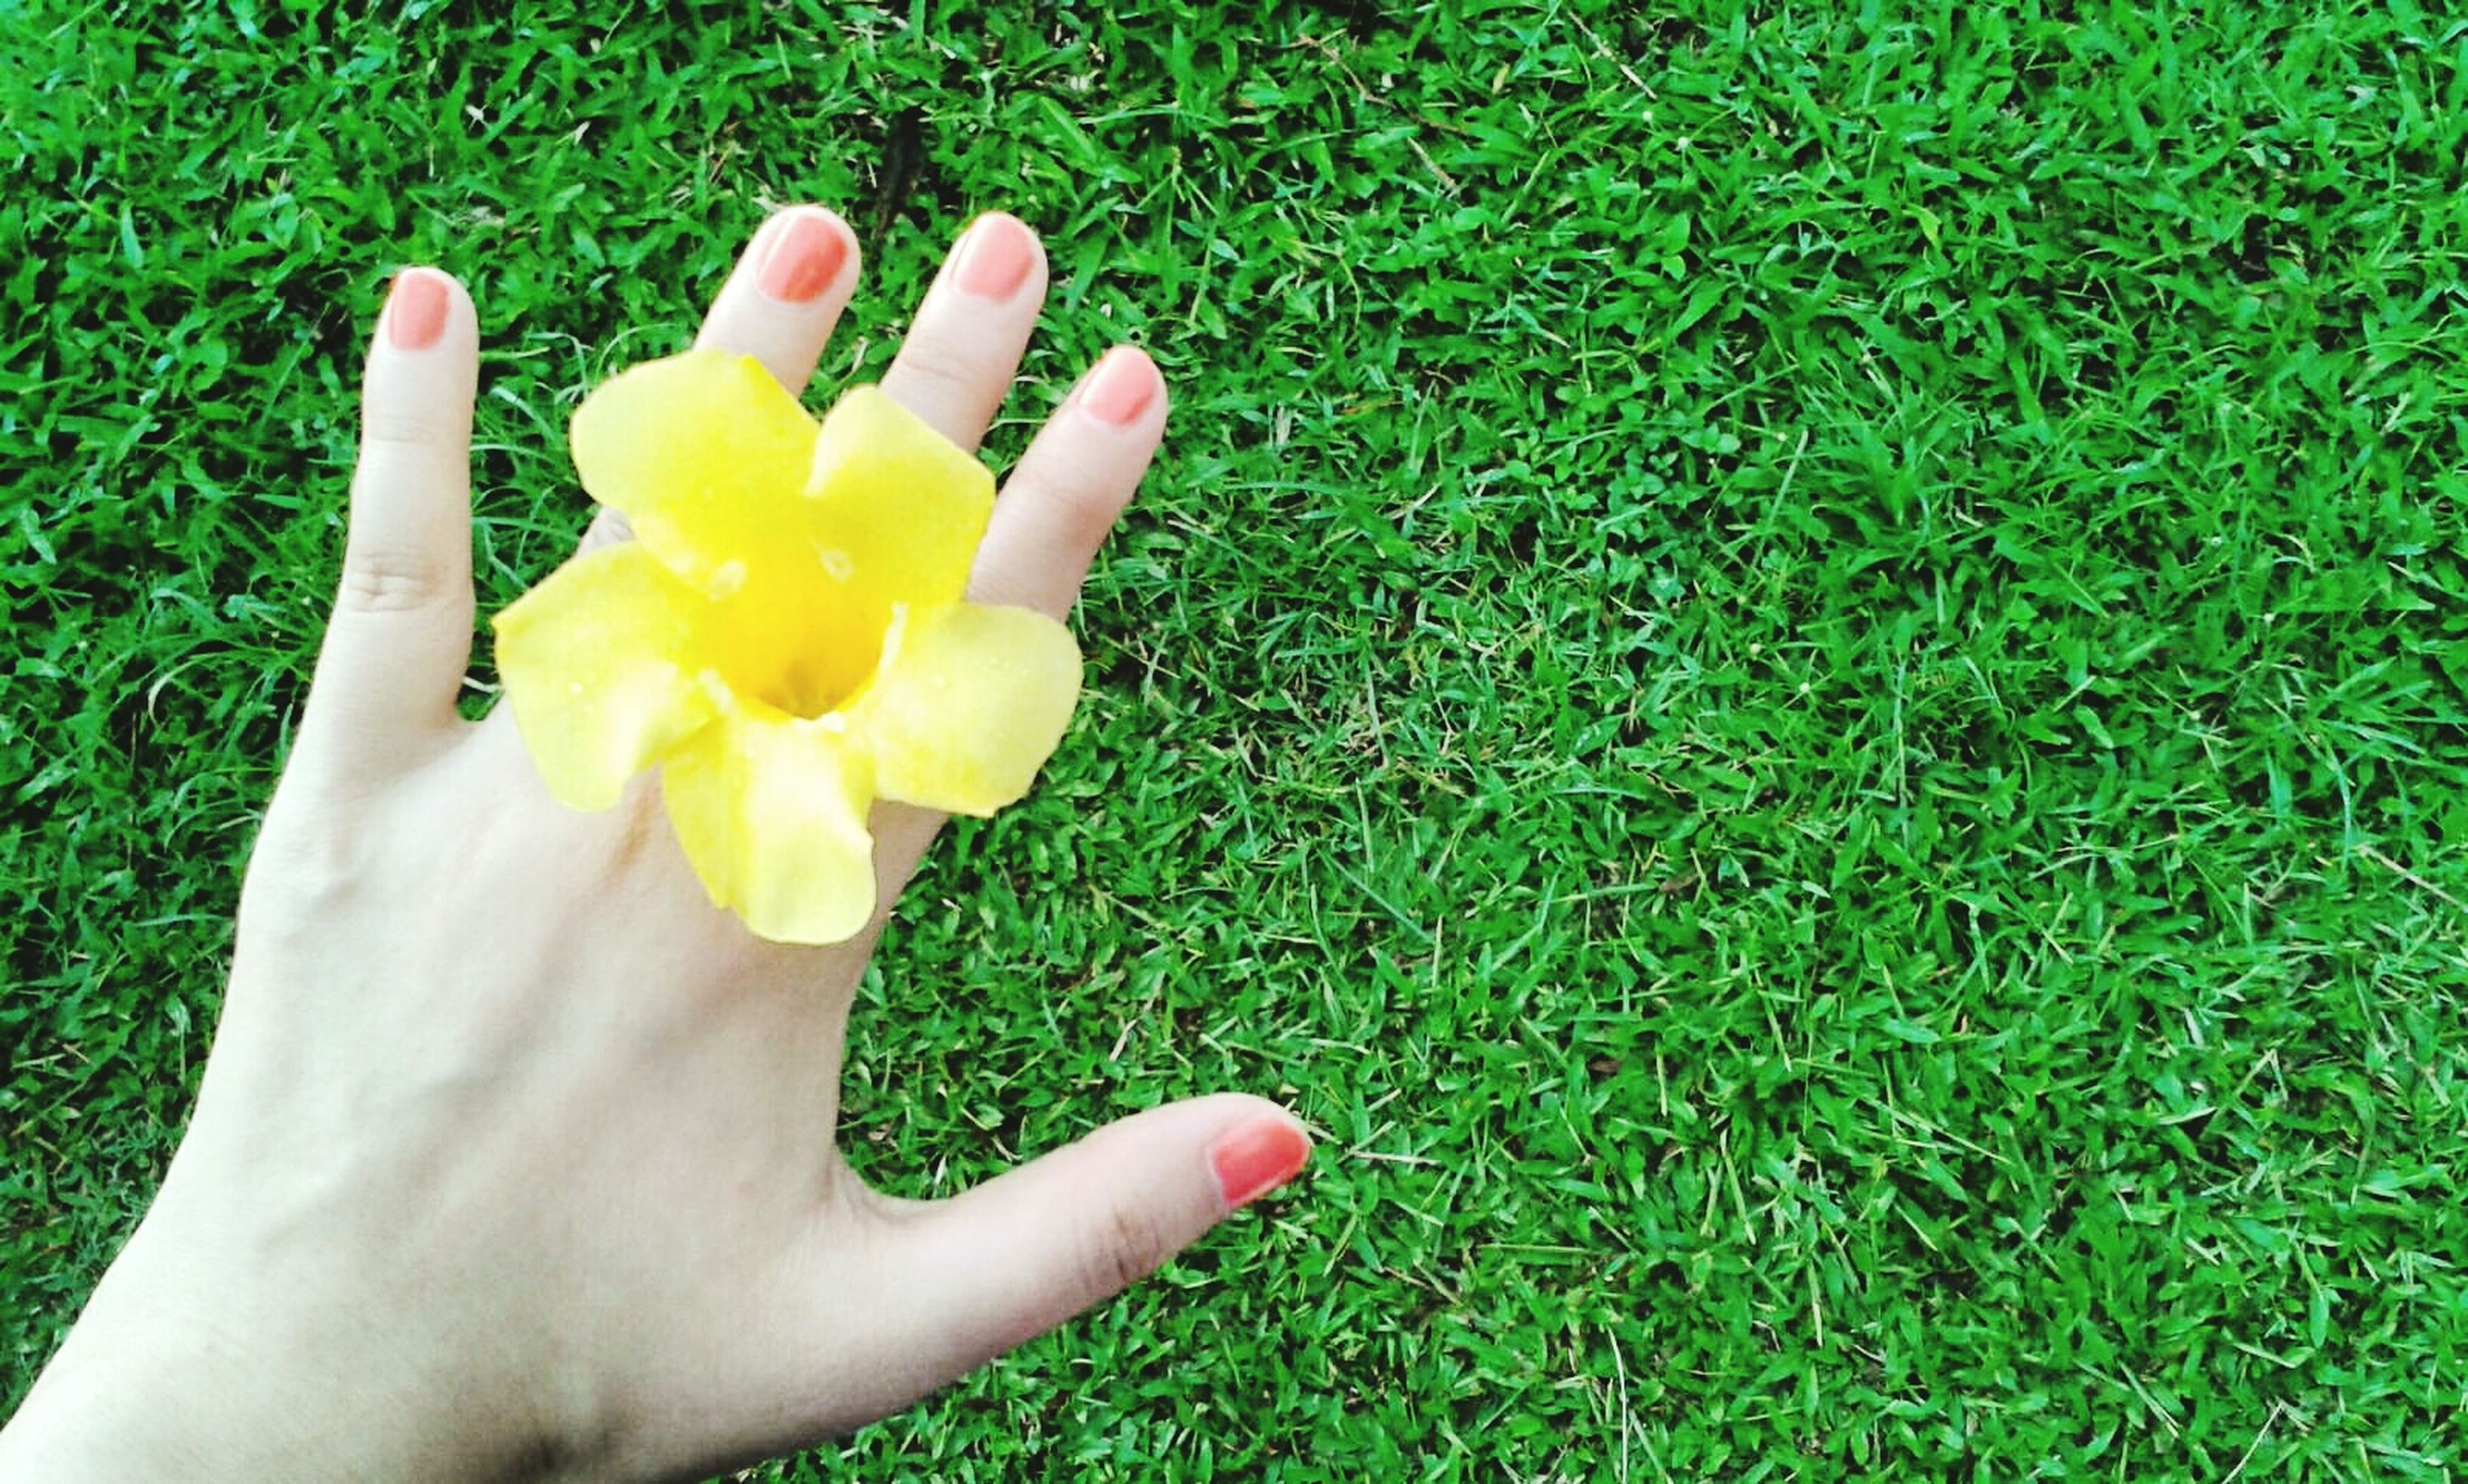 grass, person, flower, green color, field, grassy, part of, holding, unrecognizable person, personal perspective, cropped, freshness, high angle view, growth, yellow, lifestyles, fragility